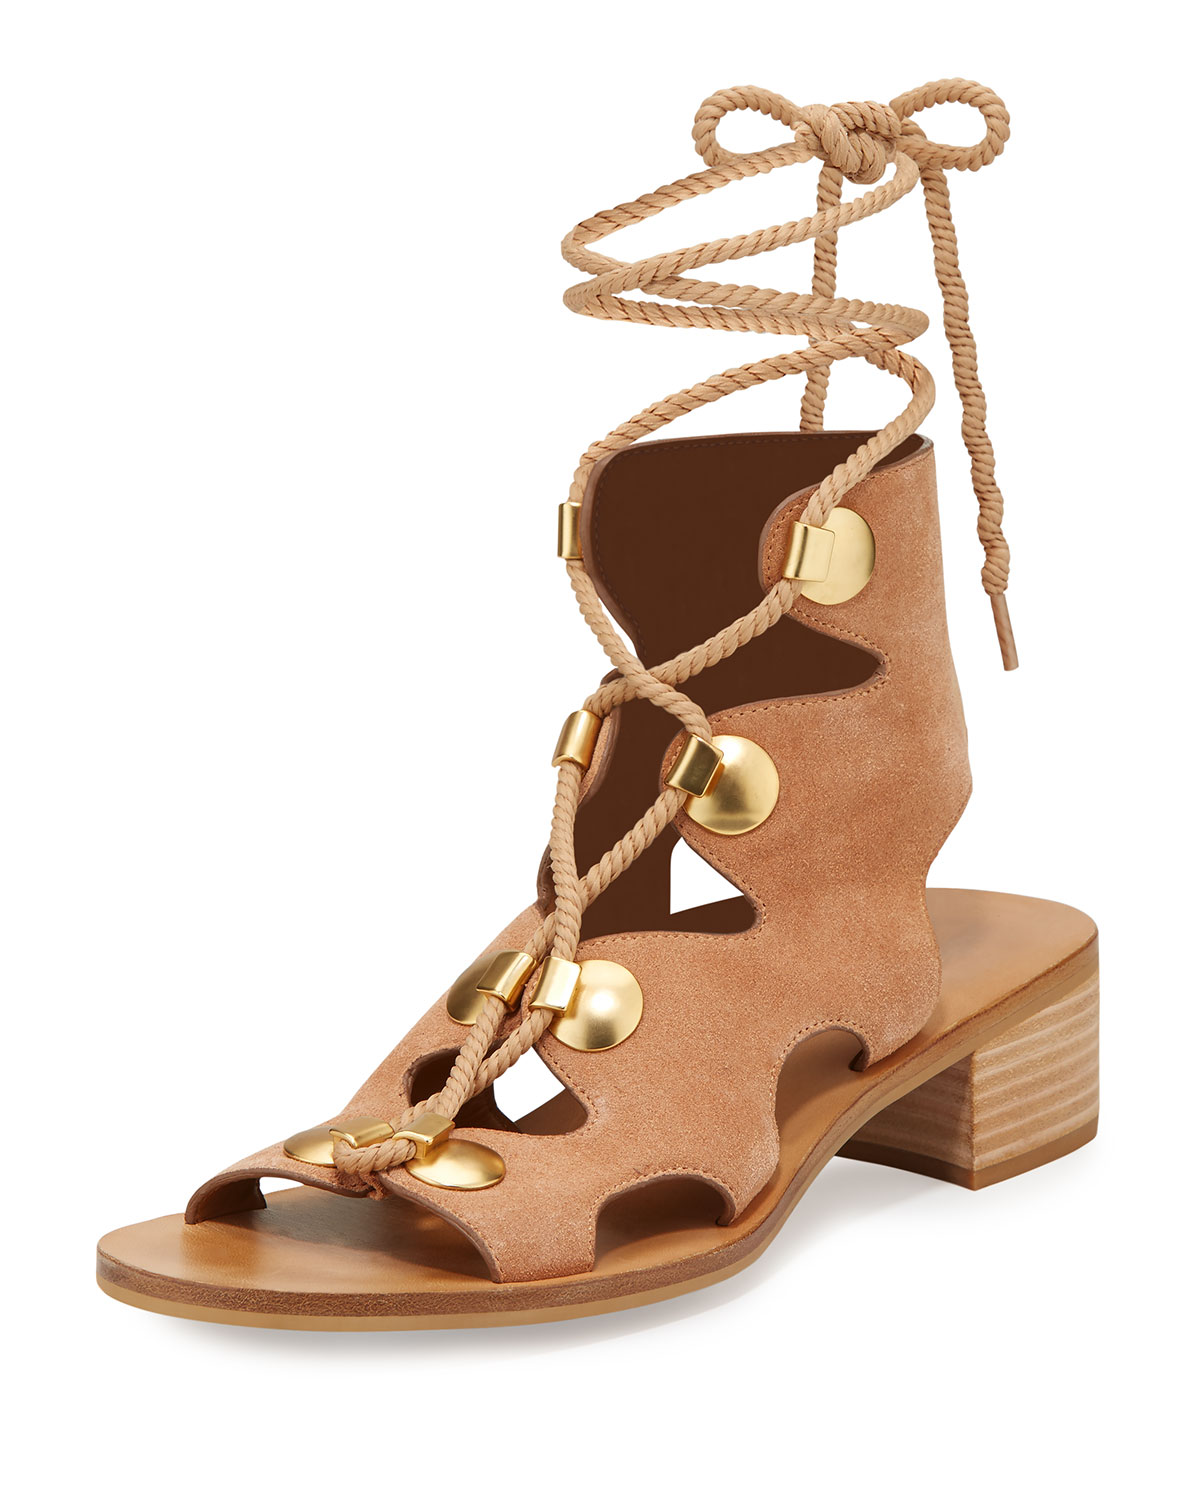 33c0e2349 See by Chloe Edna Suede Lace-Up Sandal, Cipria | Neiman Marcus